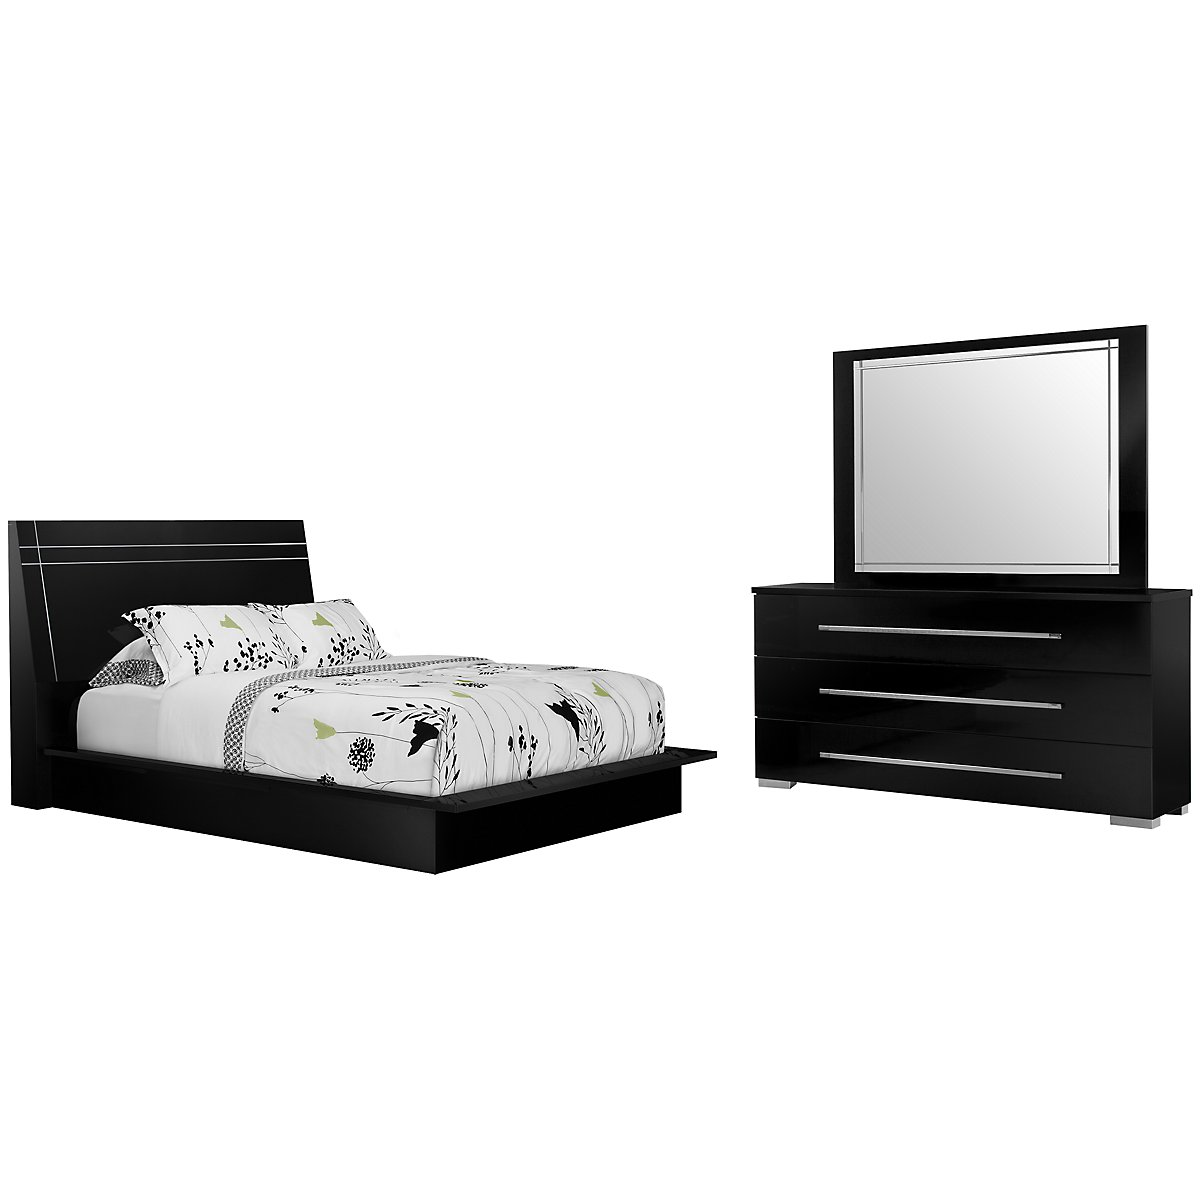 Dimora3 Black Wood Platform Bedroom City Furniture